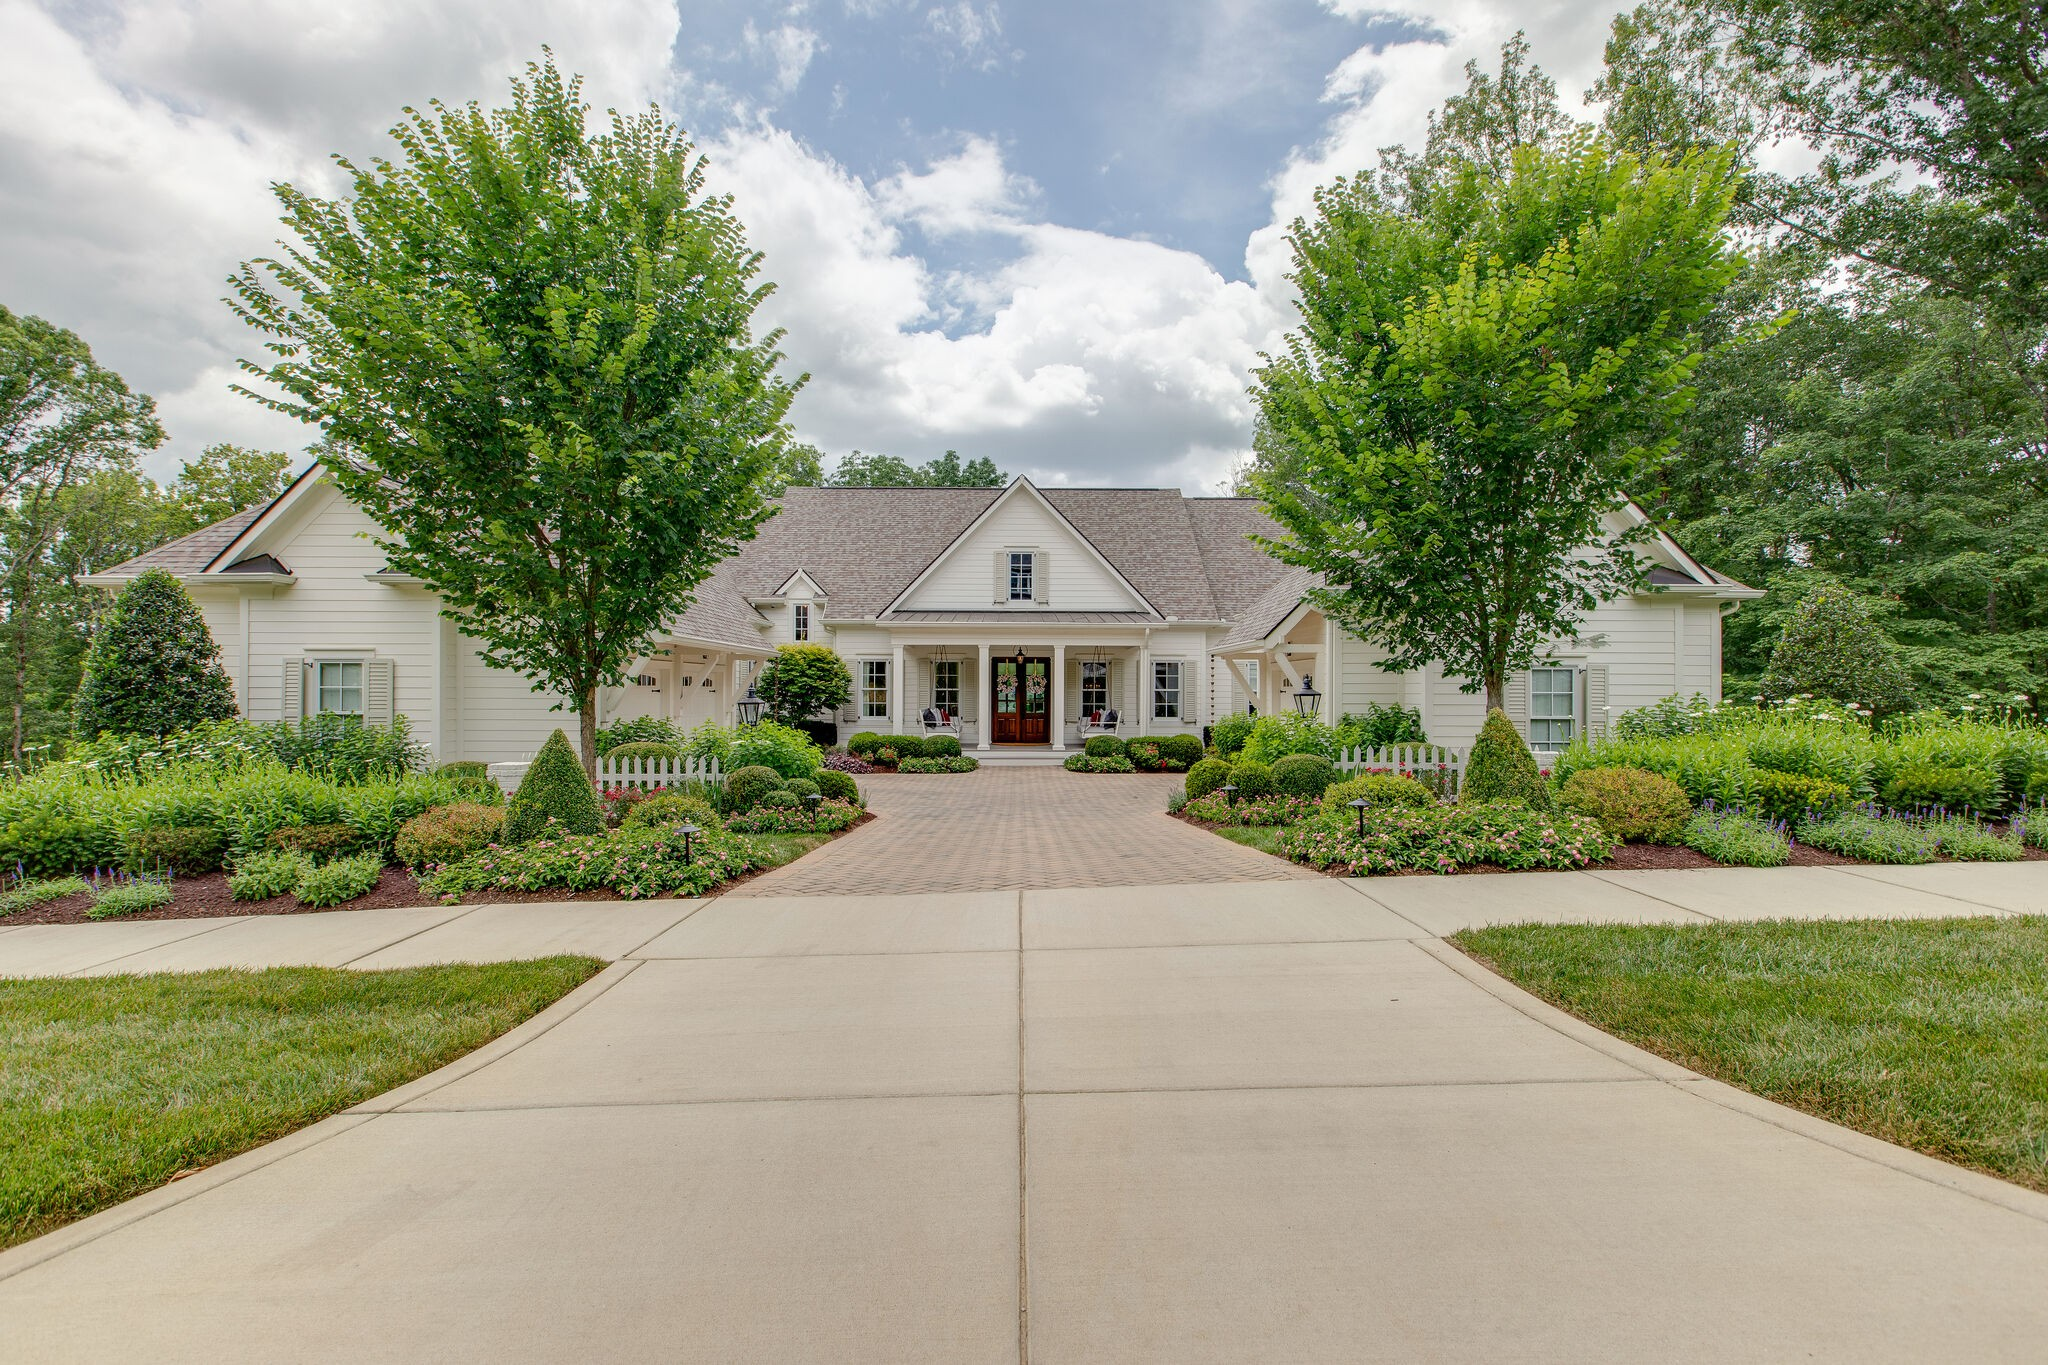 8495 Heirloom Blvd (Lot 6026) Property Photo - College Grove, TN real estate listing